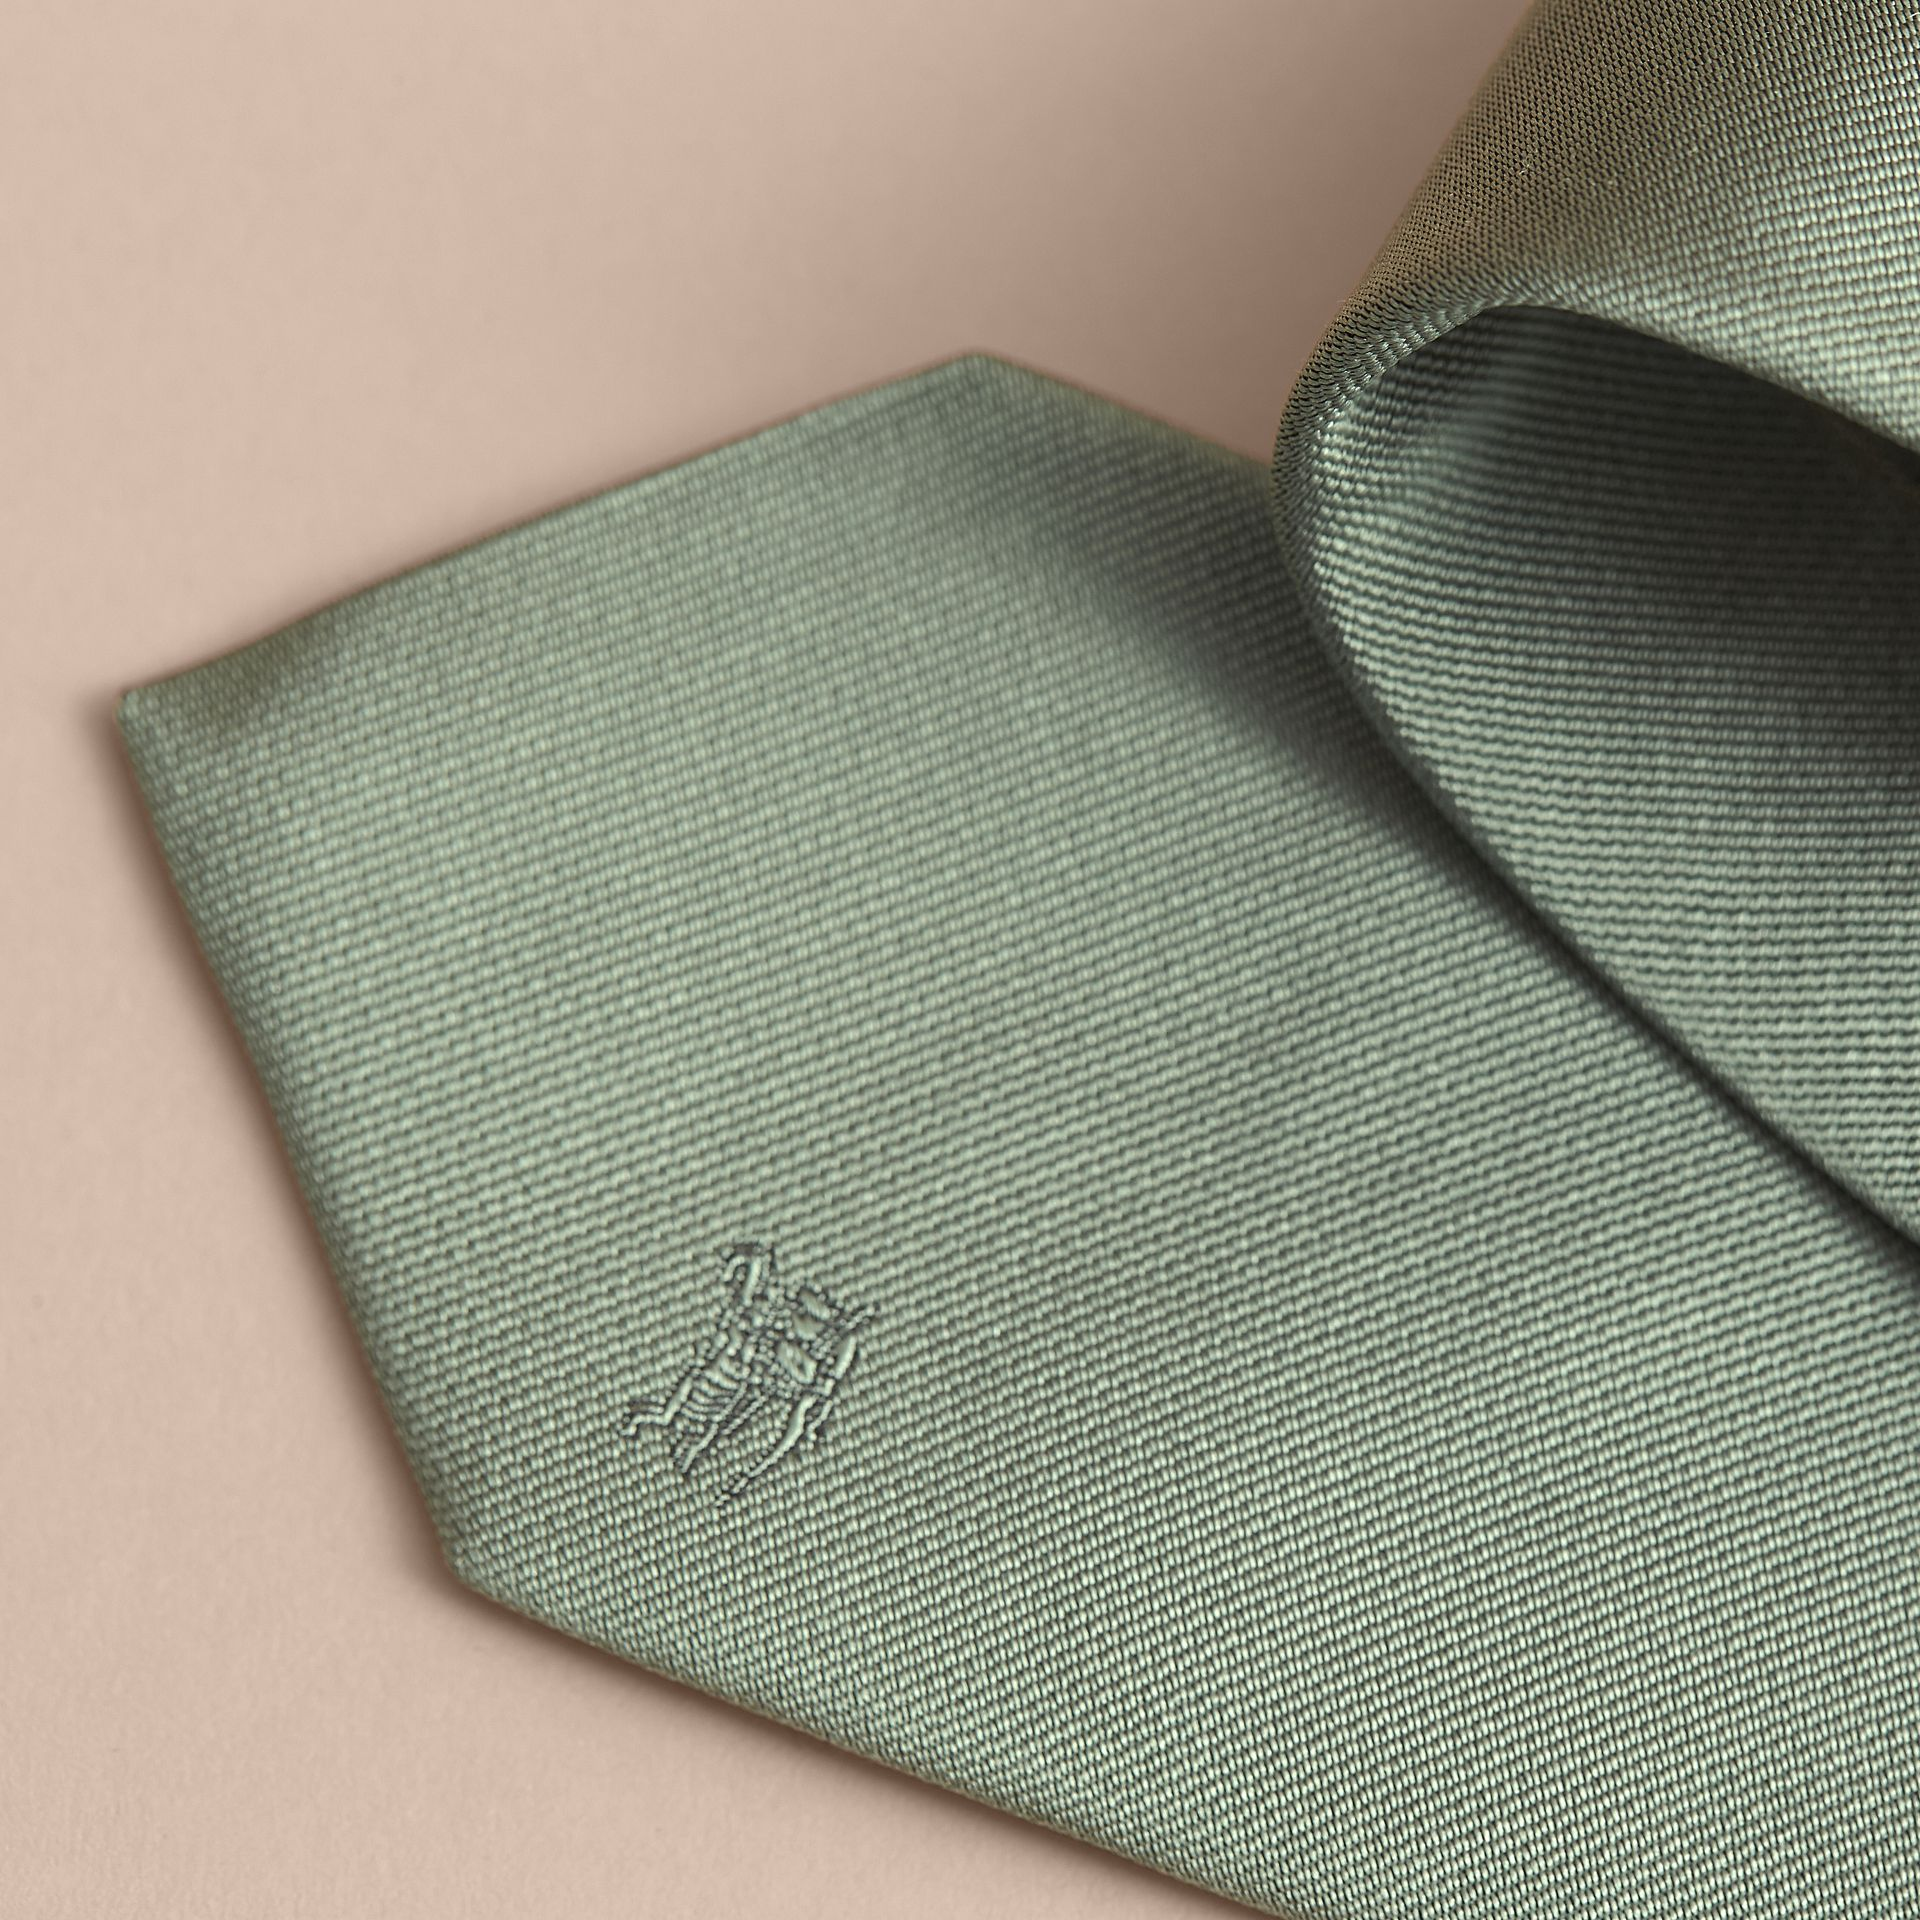 Modern Cut Silk Twill Tie in Eucalyptus Green - Men | Burberry - gallery image 2